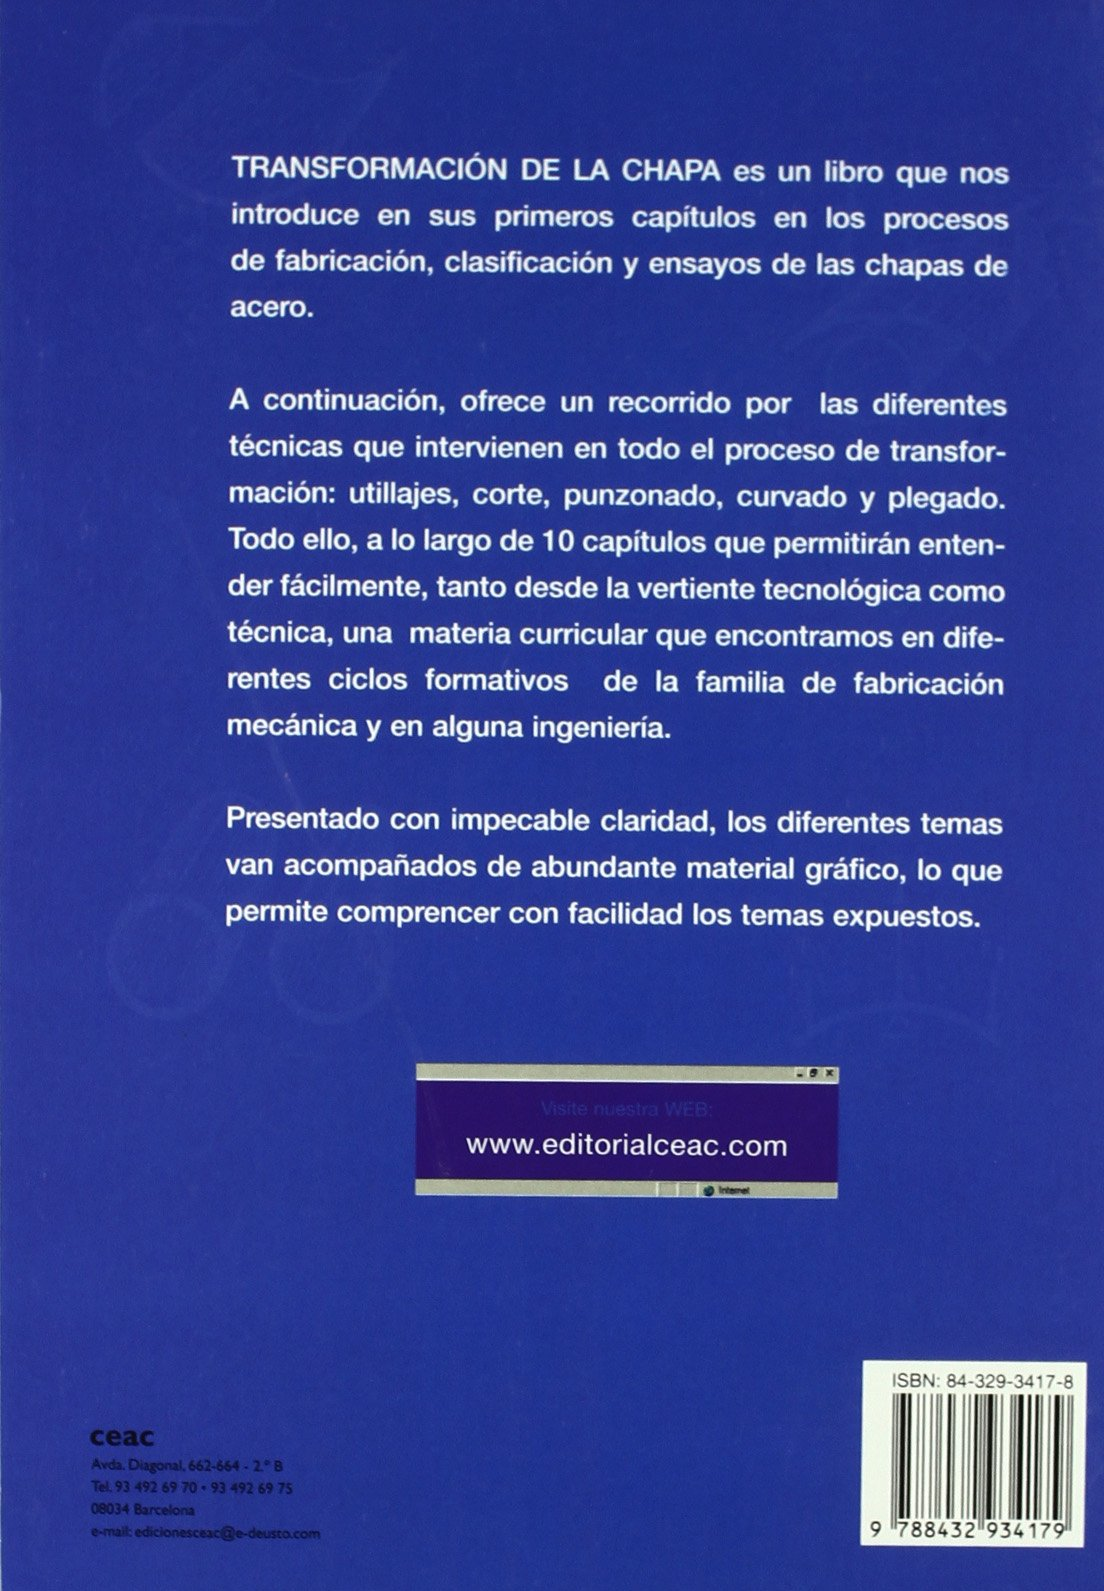 Transformacion de la chapa: Charles Lobjois: 9788432934179: Amazon.com: Books